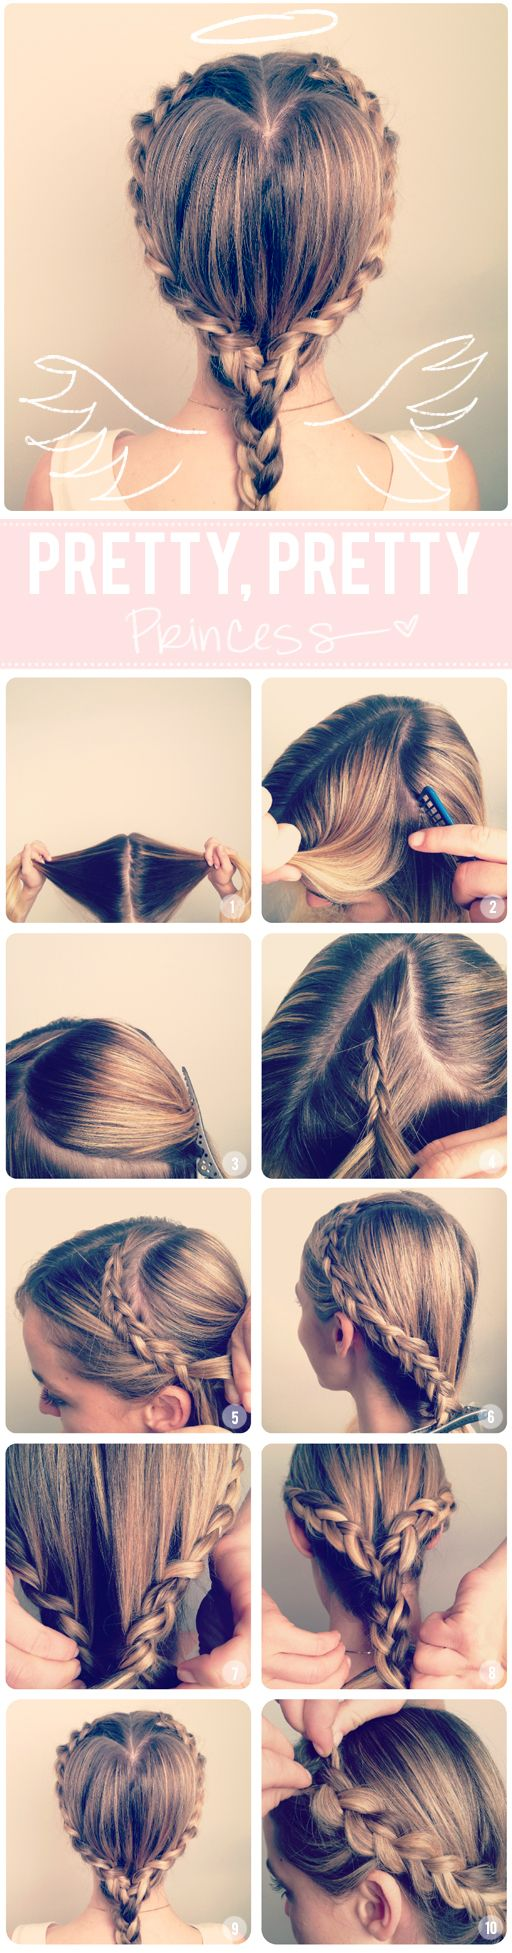 11 Interesting And Useful Hair Tutorials For Every Day, DIY Heart Braid Hairstyle